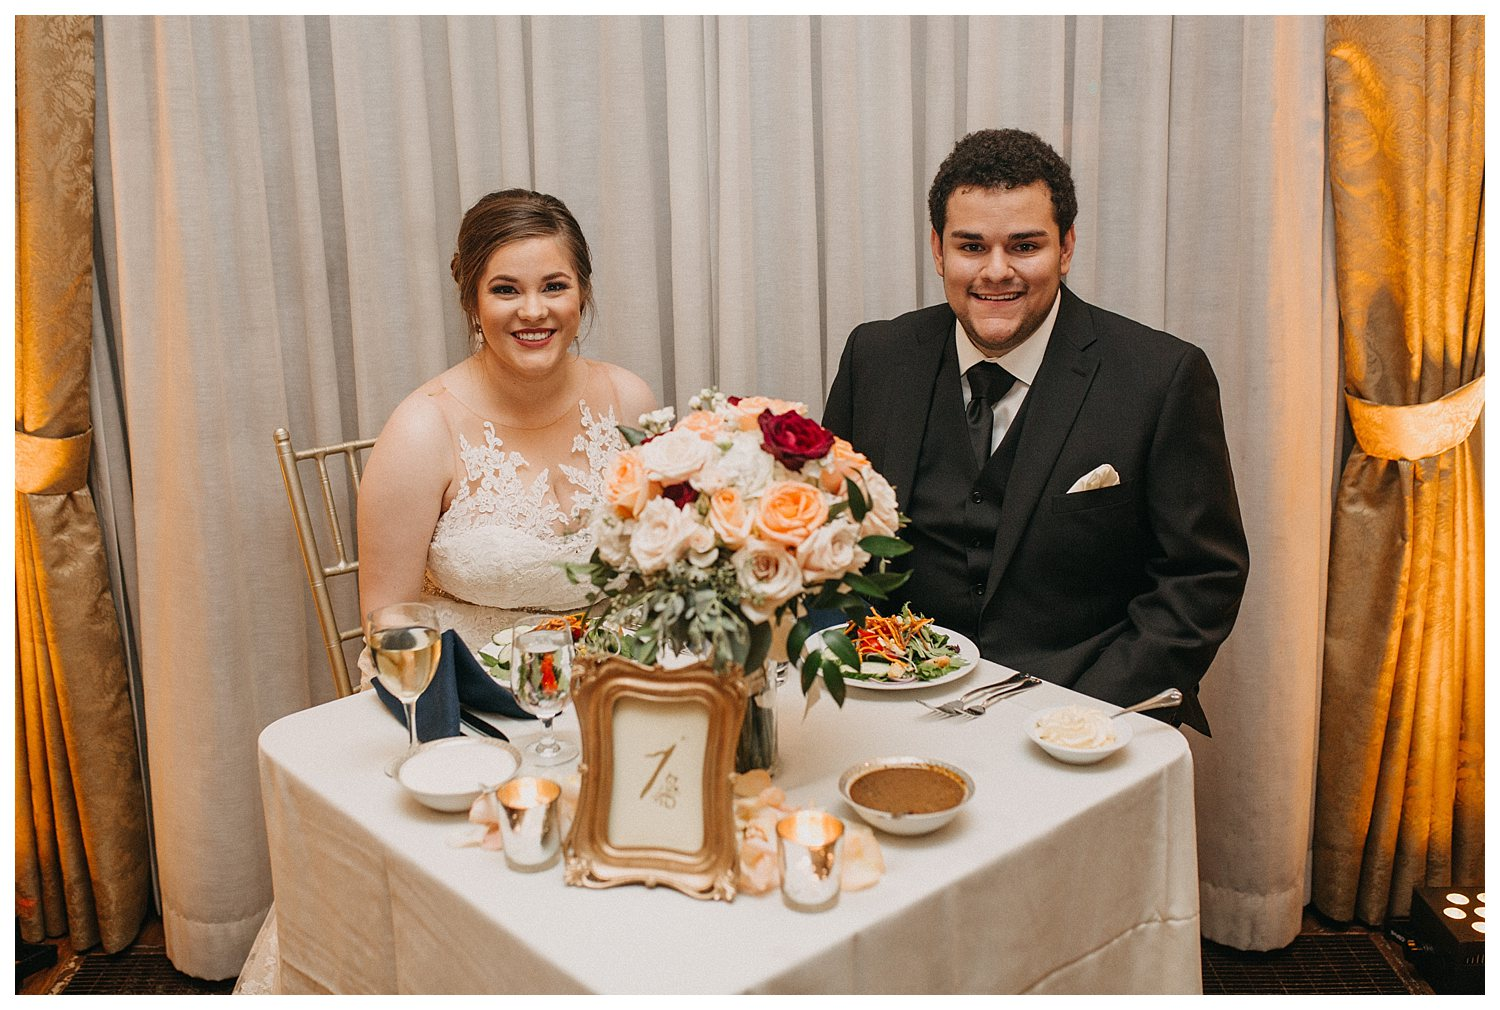 Kelsey_Diane_Photography_Loose_Mansion_Wedding_Photography_Kansas_City_Victor_Lyndsay_0157.jpg